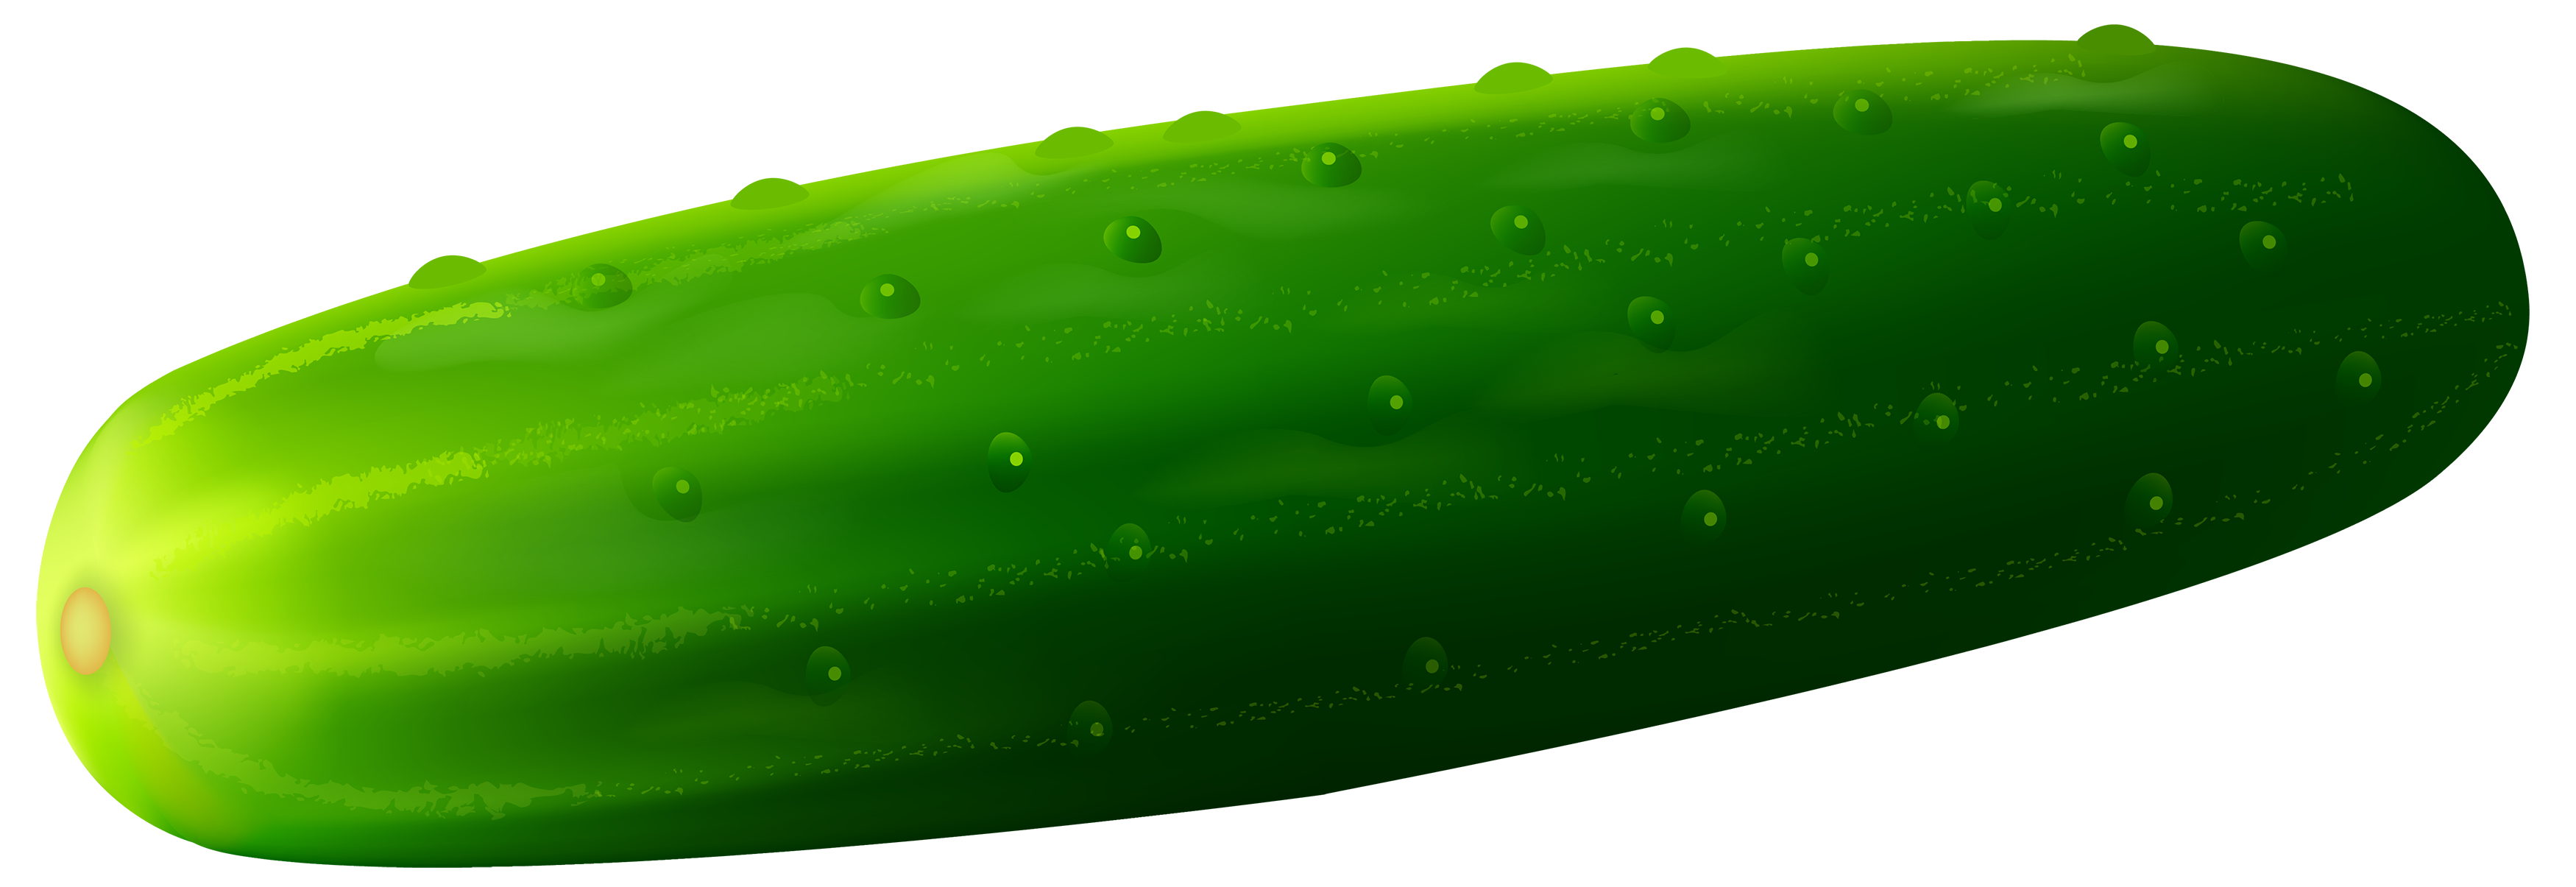 Cucumber clipart image web. Cucumber PNG image free download